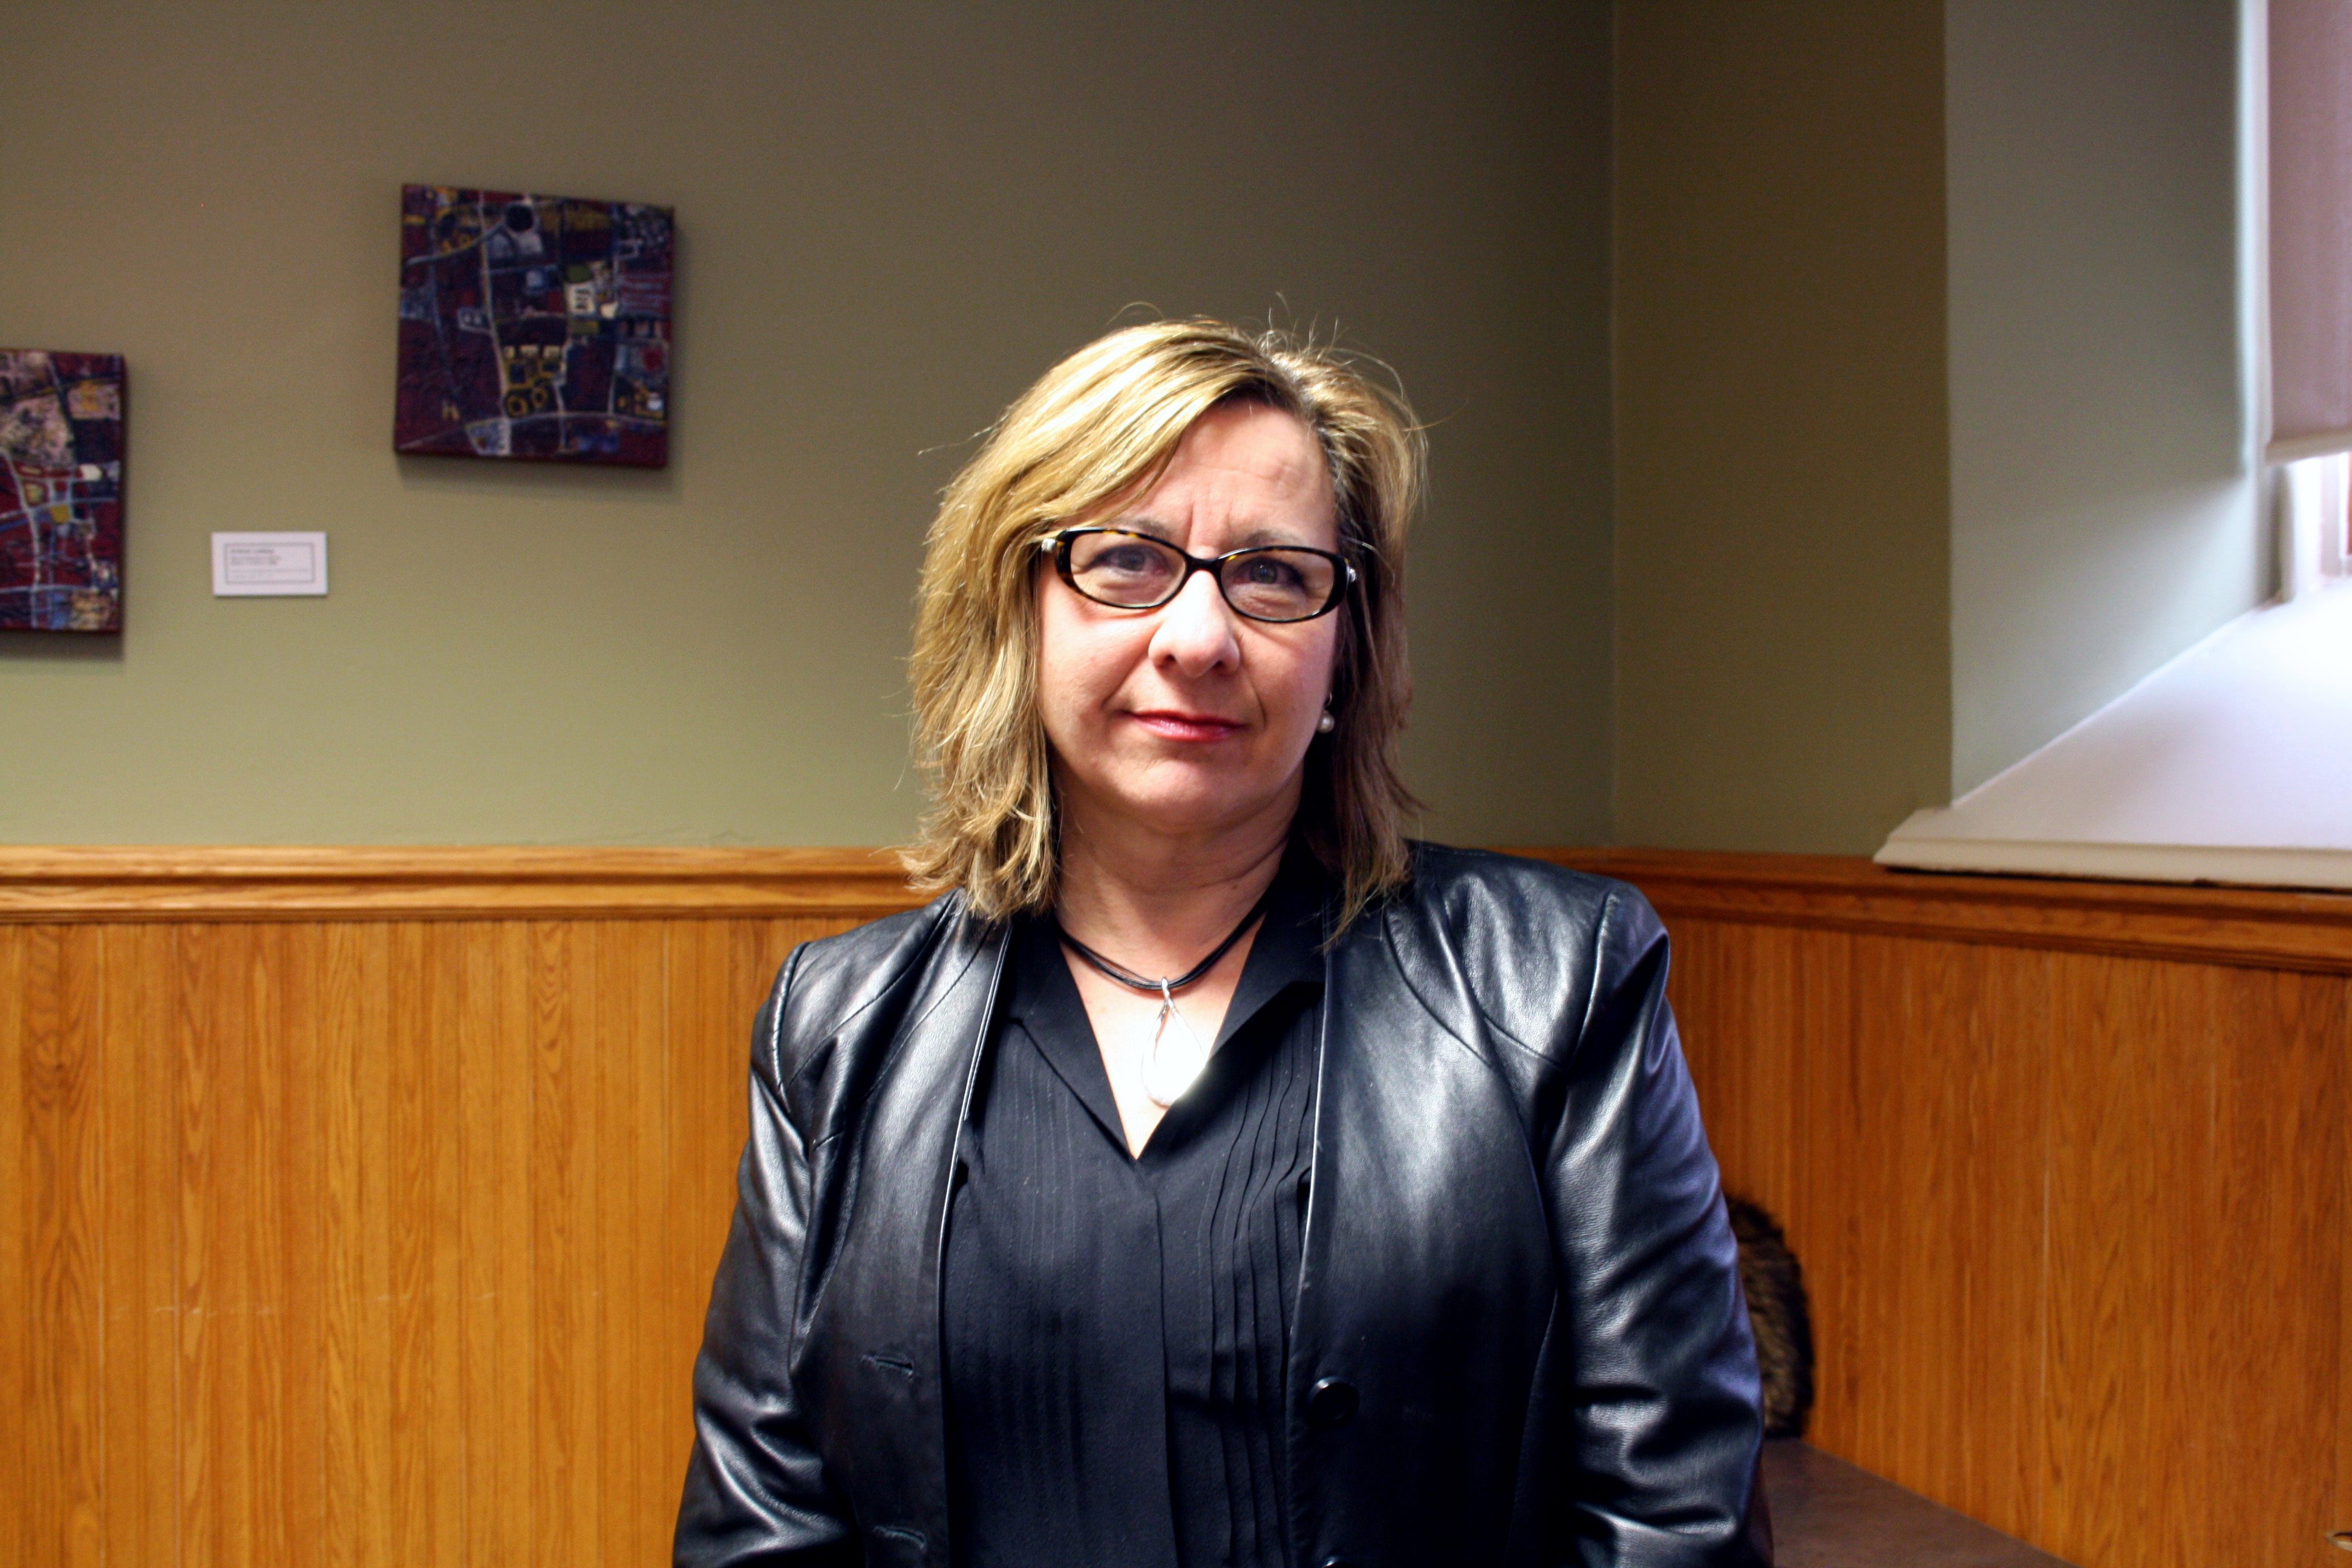 Kathy English visits Laurier Brantford. By Christina Manocchio.